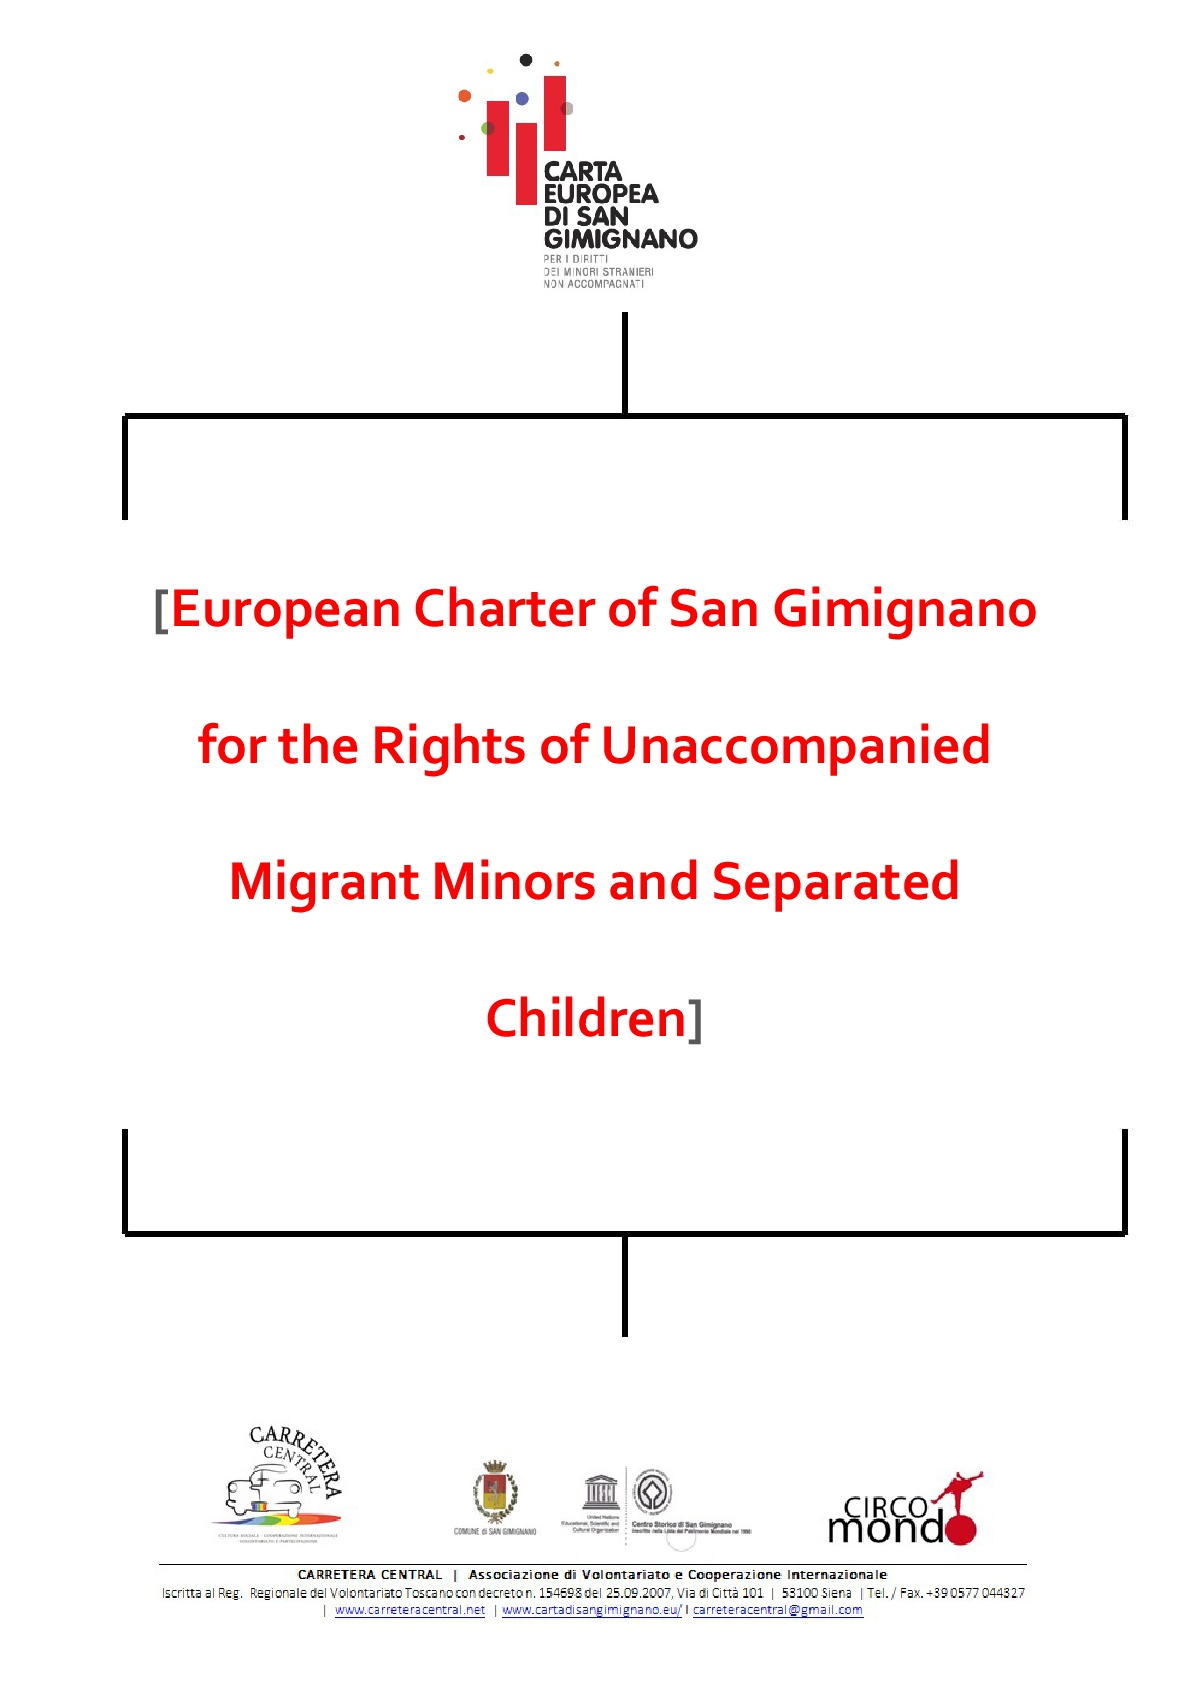 european charter of san gimignano for the rights of unaccompanied migrant minors and separated children